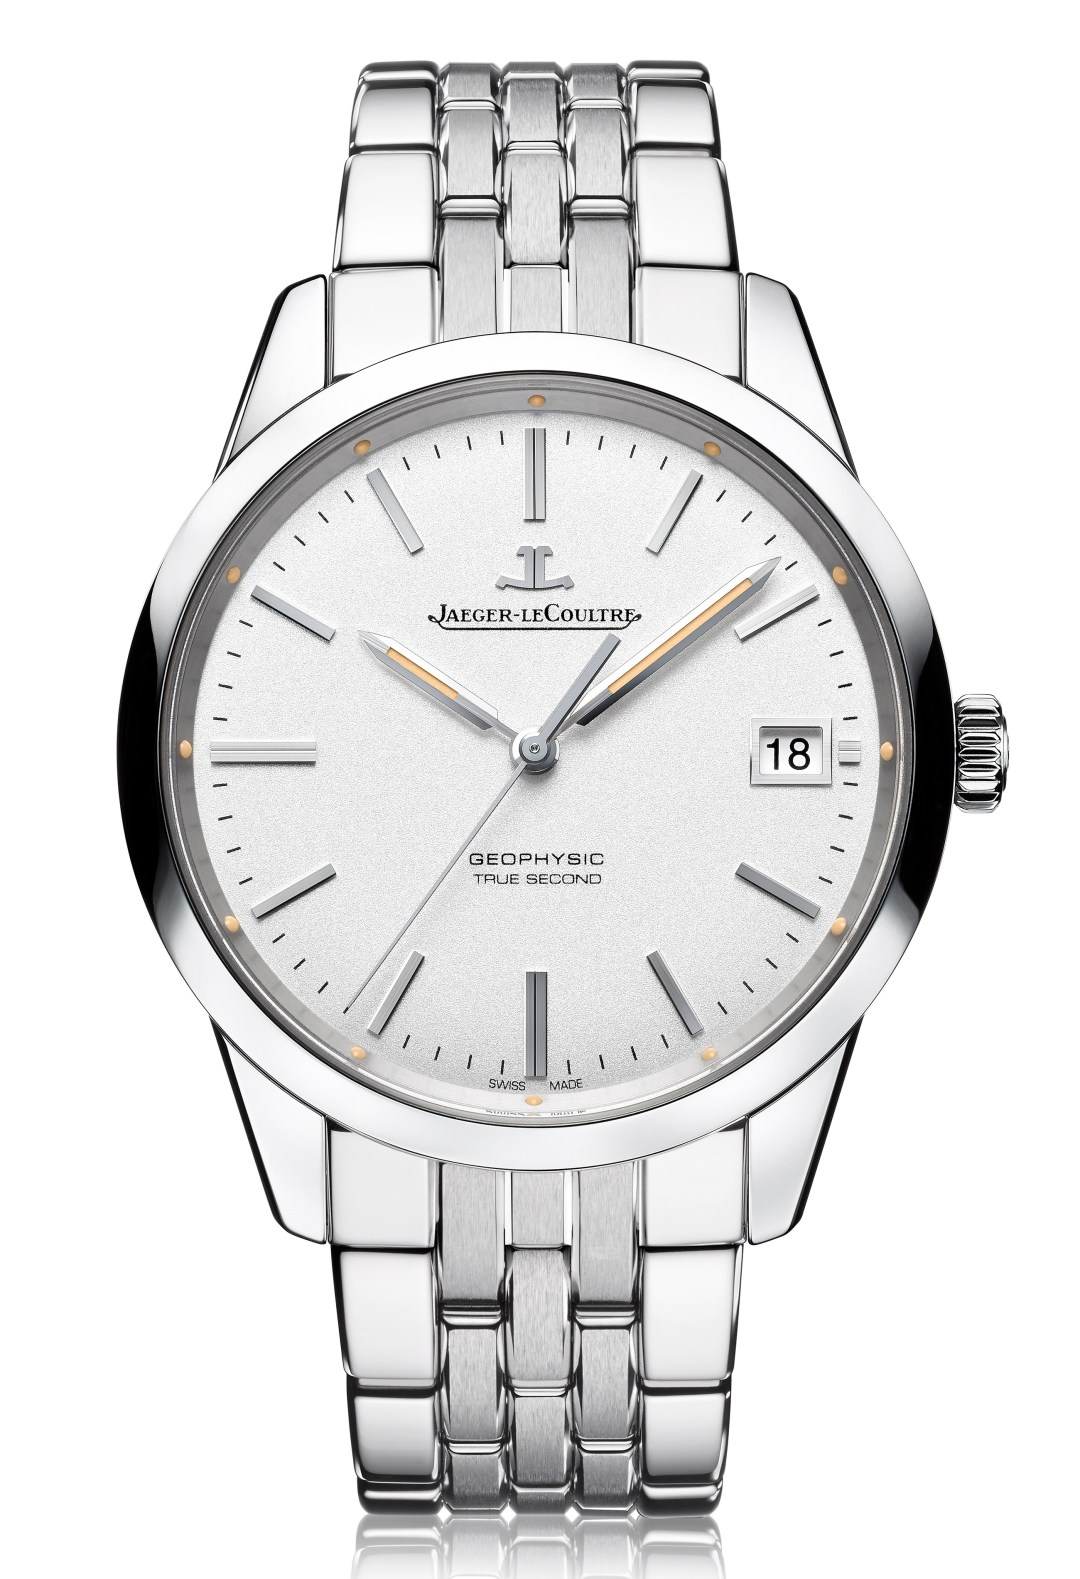 Jaeger-LeCoultre Geophysic True Second_steel copy.jpg